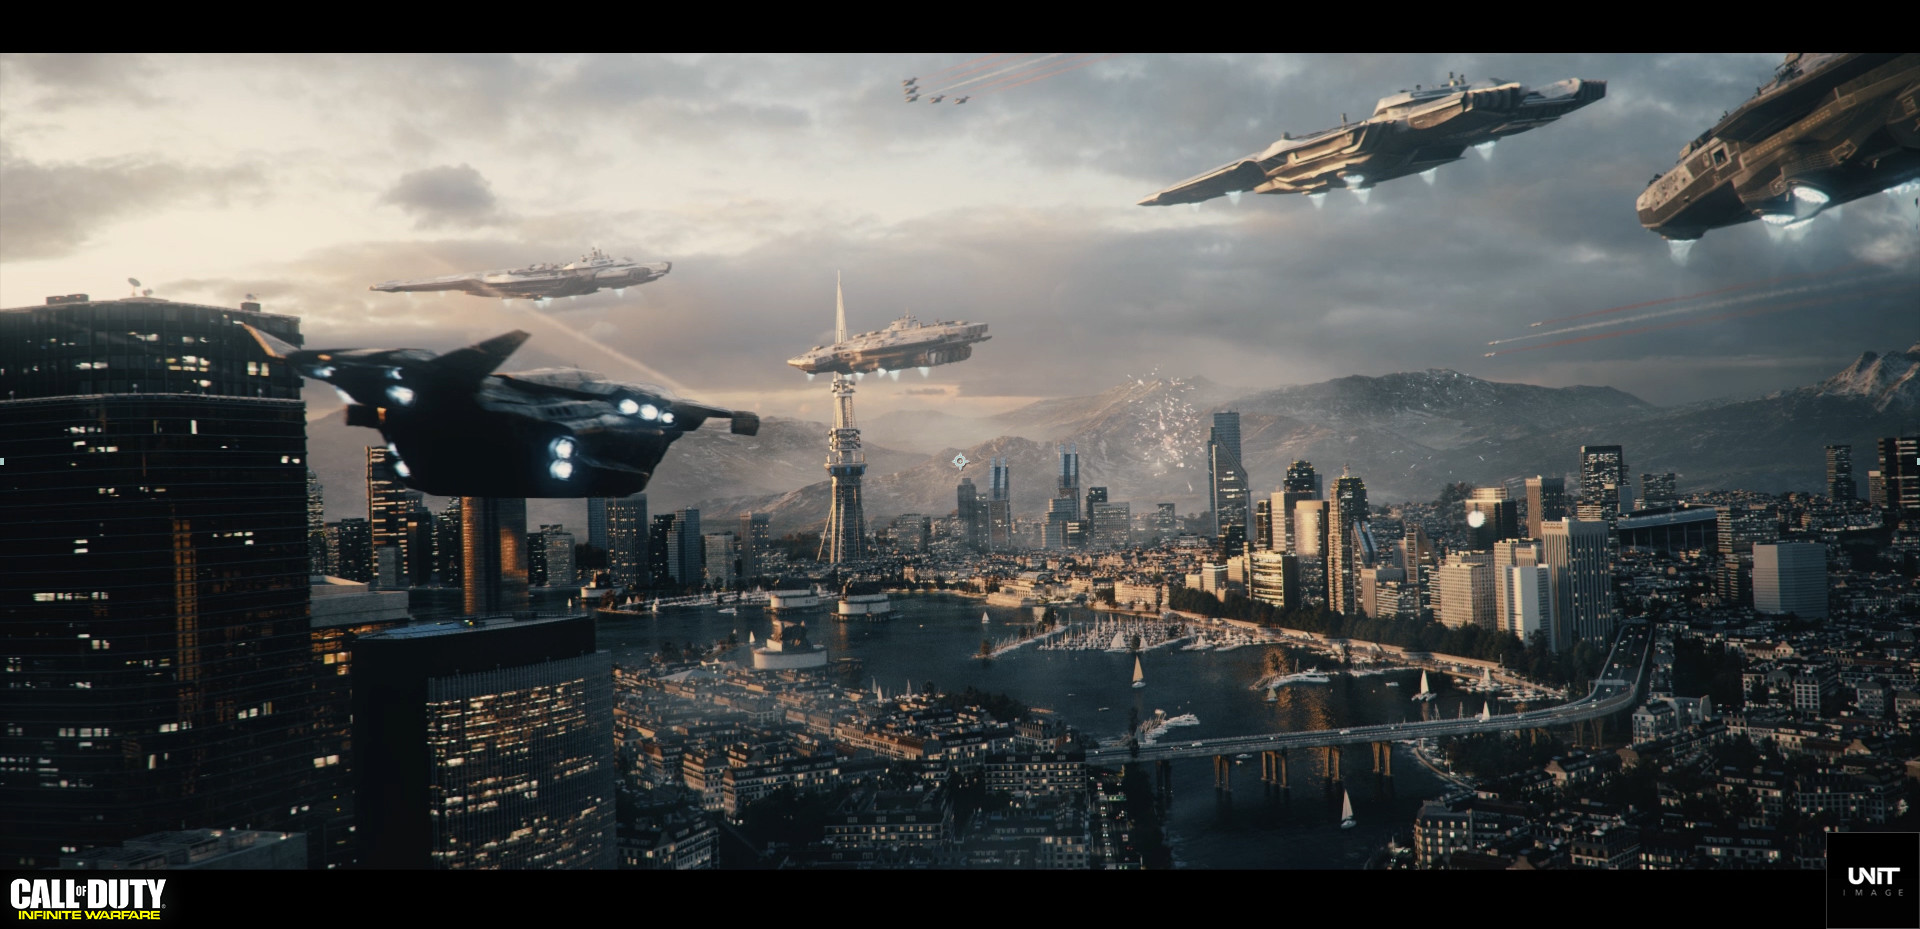 Admiral-class Space Warfare Carrier | Call of Duty Wiki